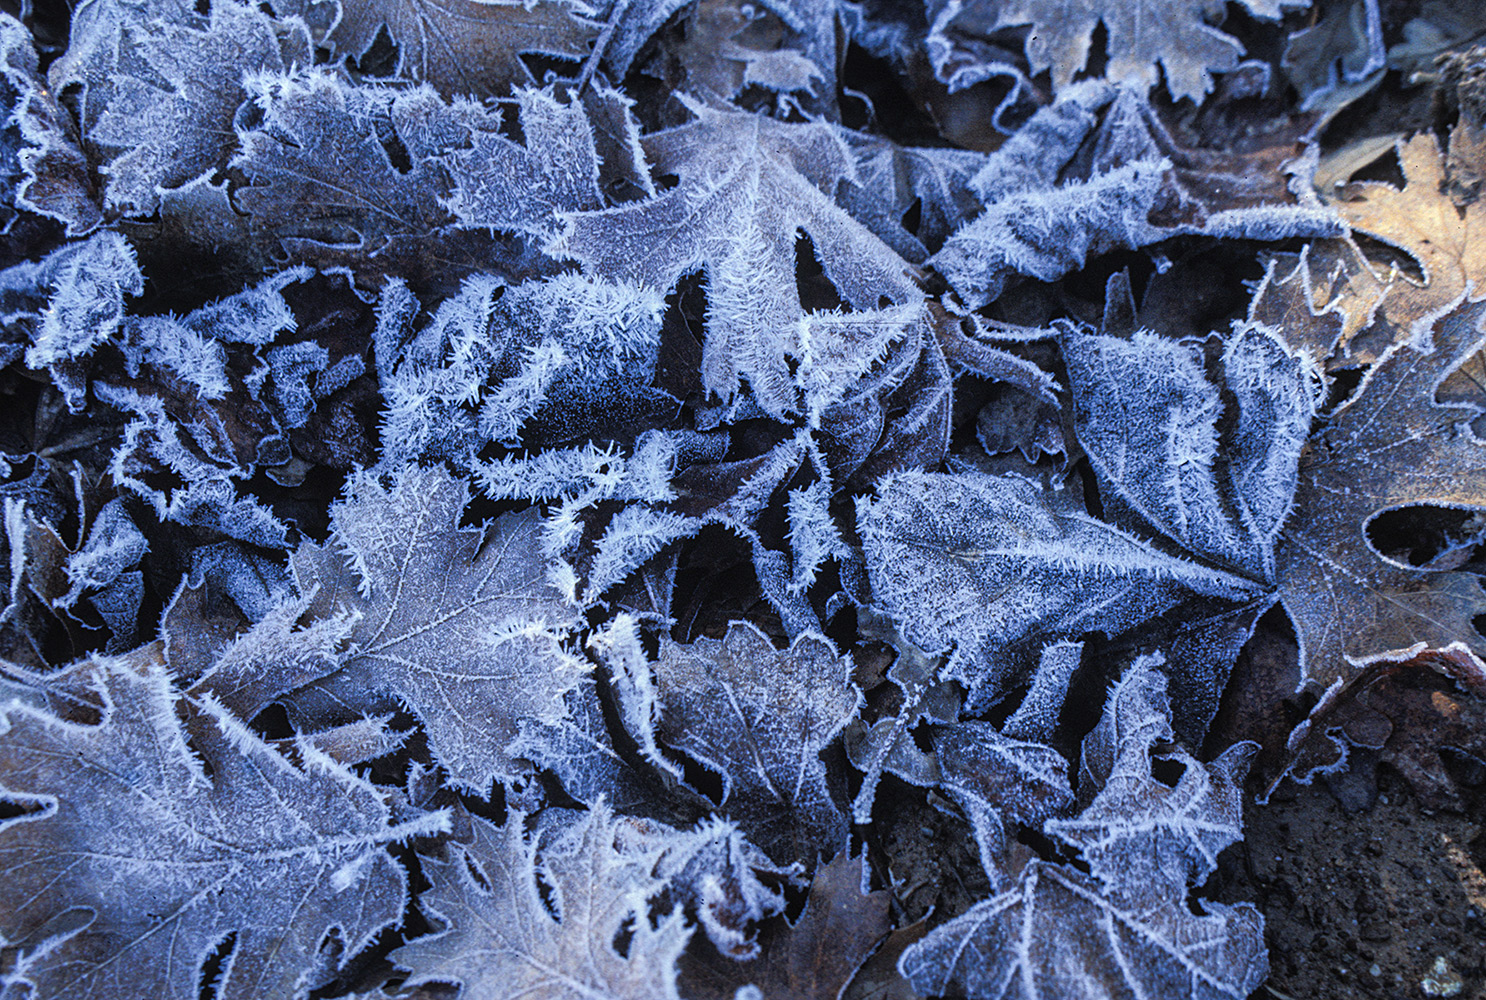 Frosty grape leaves on the ground